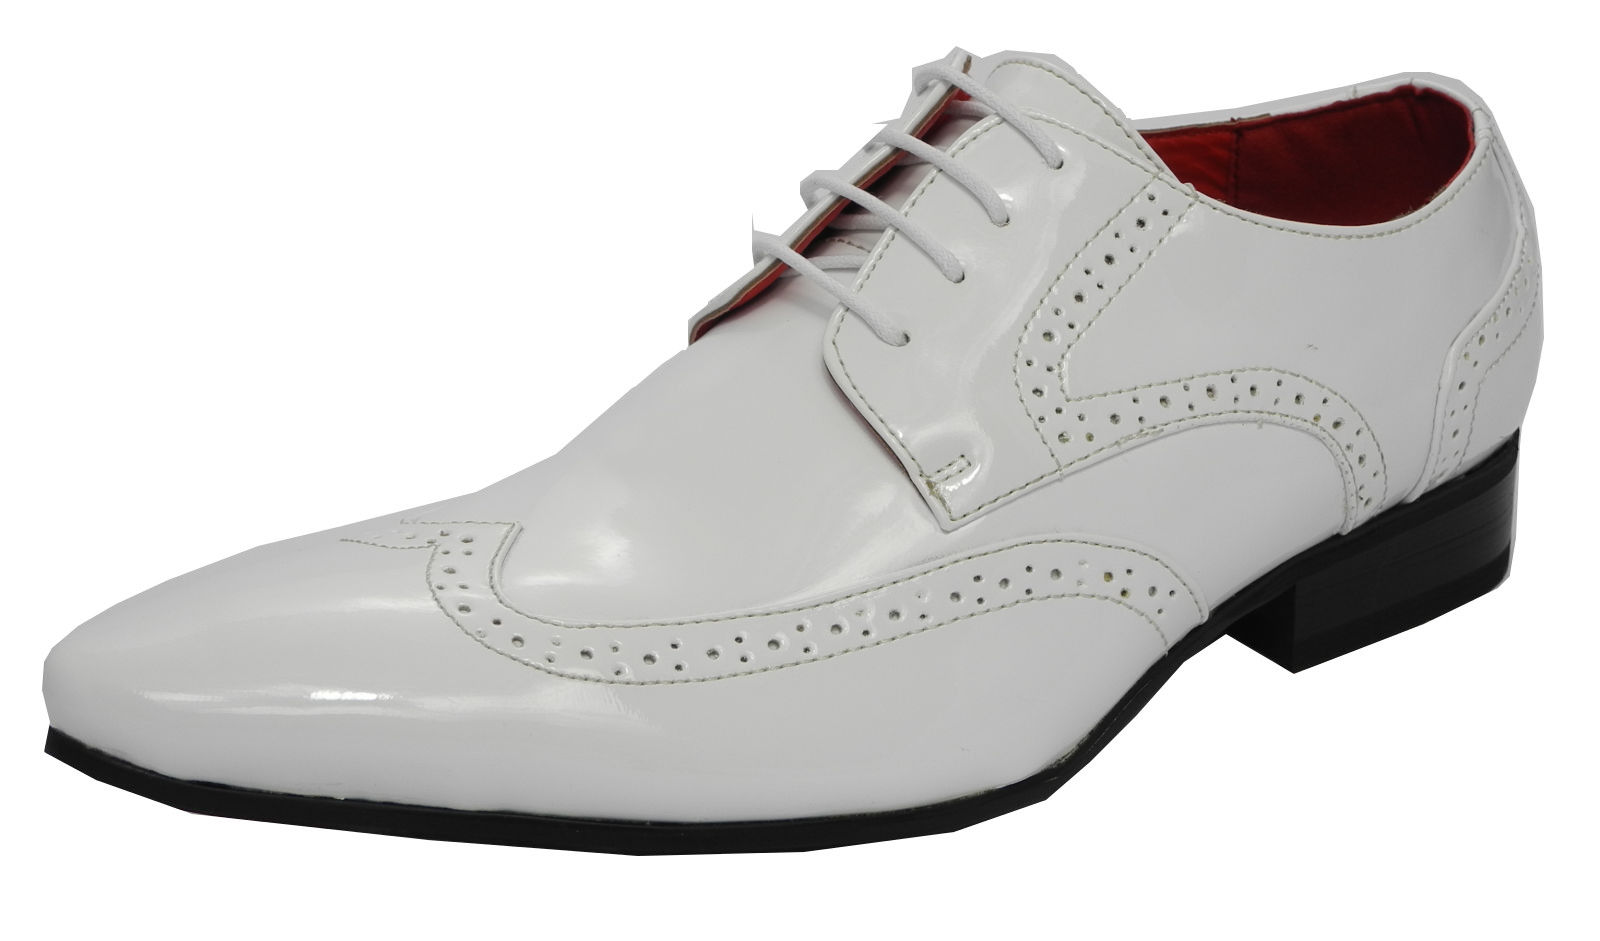 mens patent leather lined pointed toe brogues shoes white